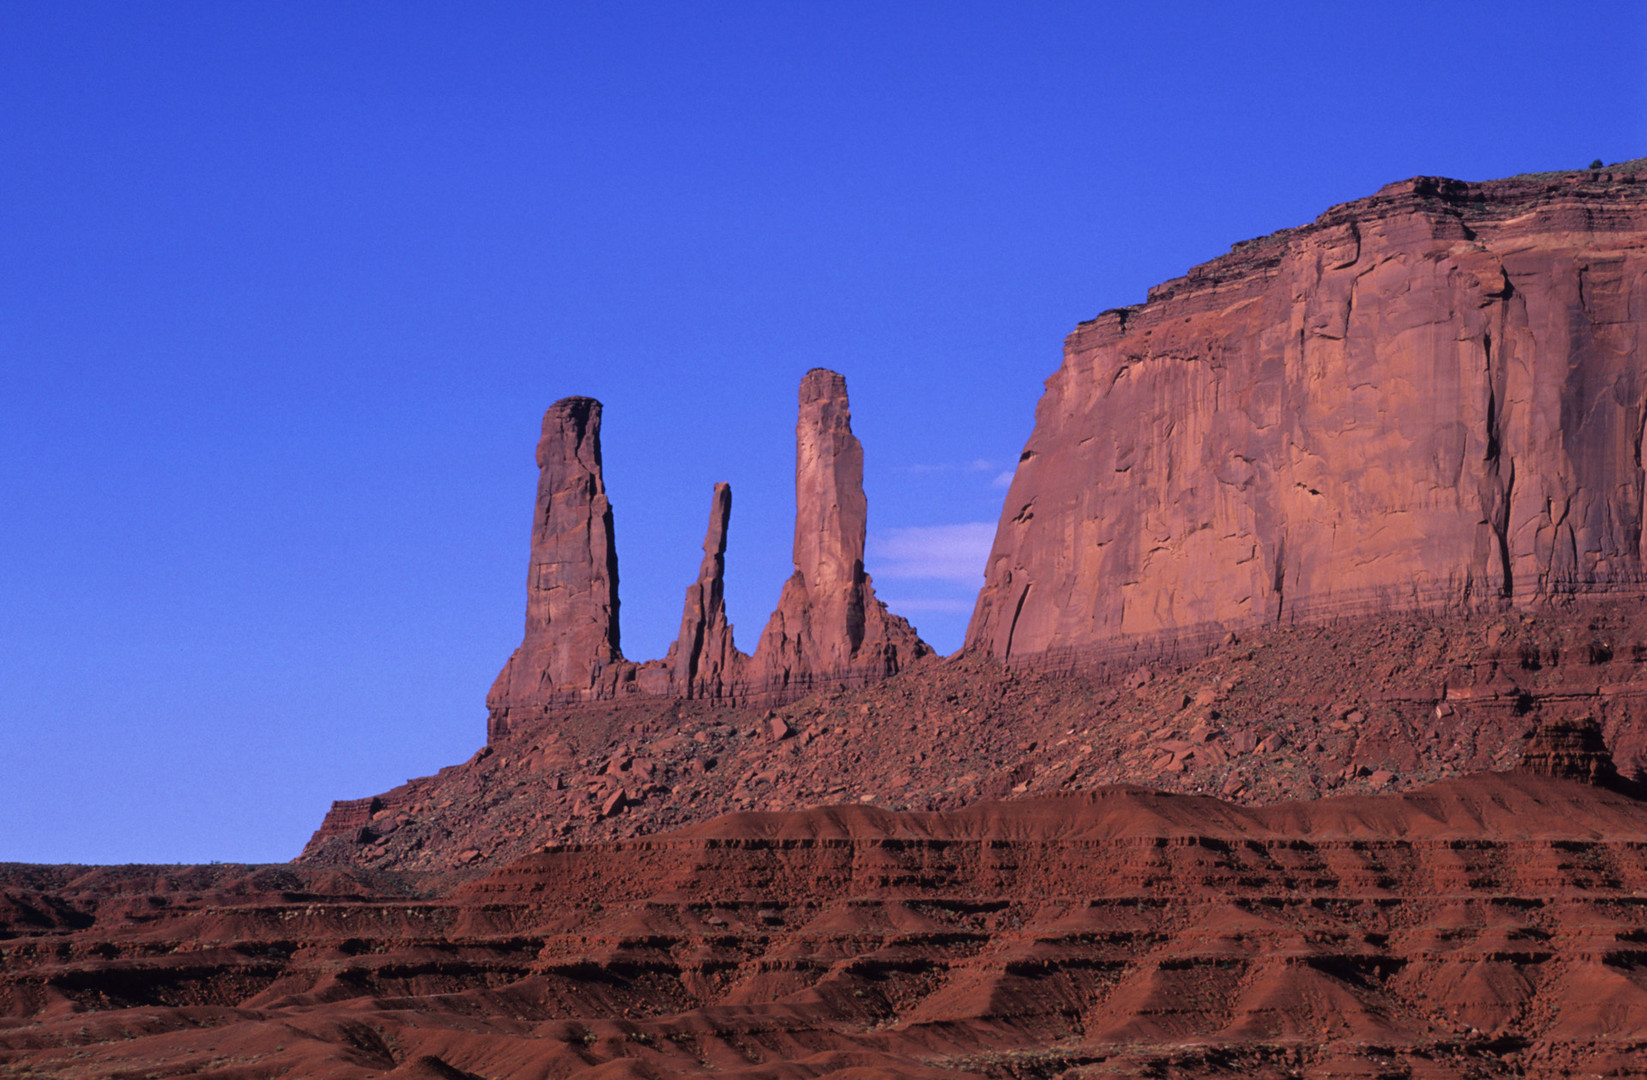 PARCHI AMERICANI DEL SUD OVEST - MONUMENT VALLEY